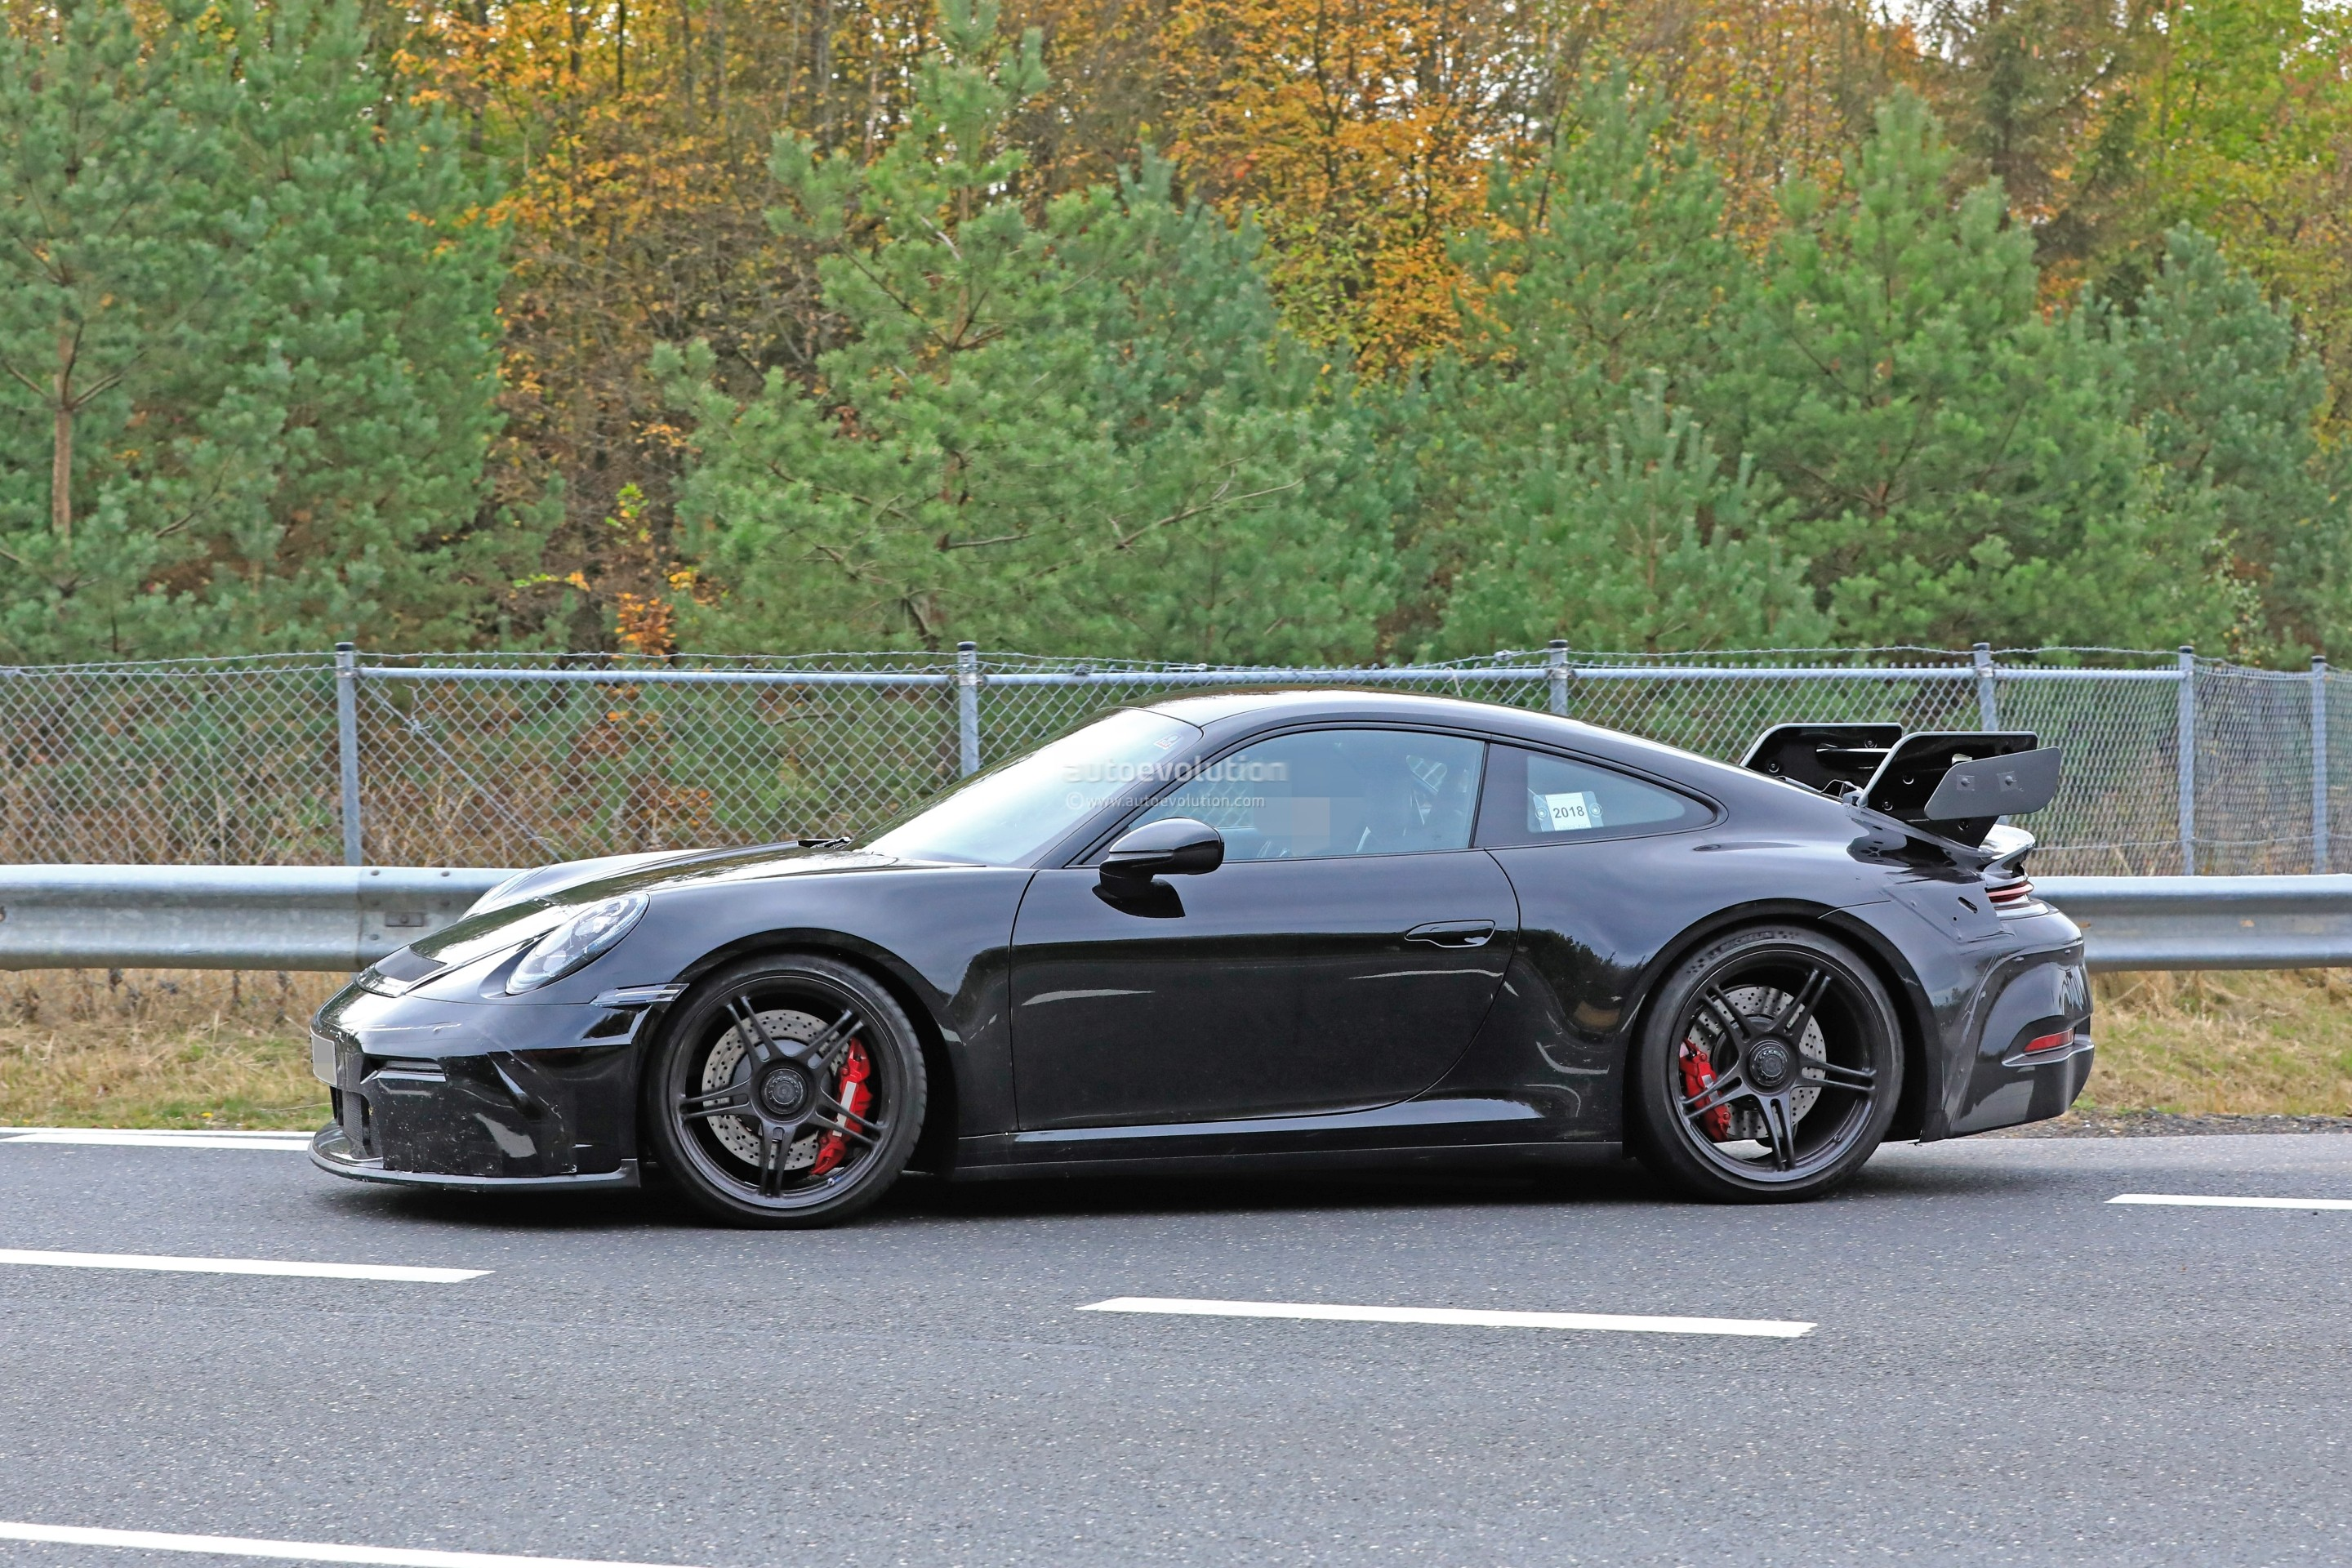 new-2020-p​orsche-911​-gt3-proto​type-shows​-productio​n-design_7